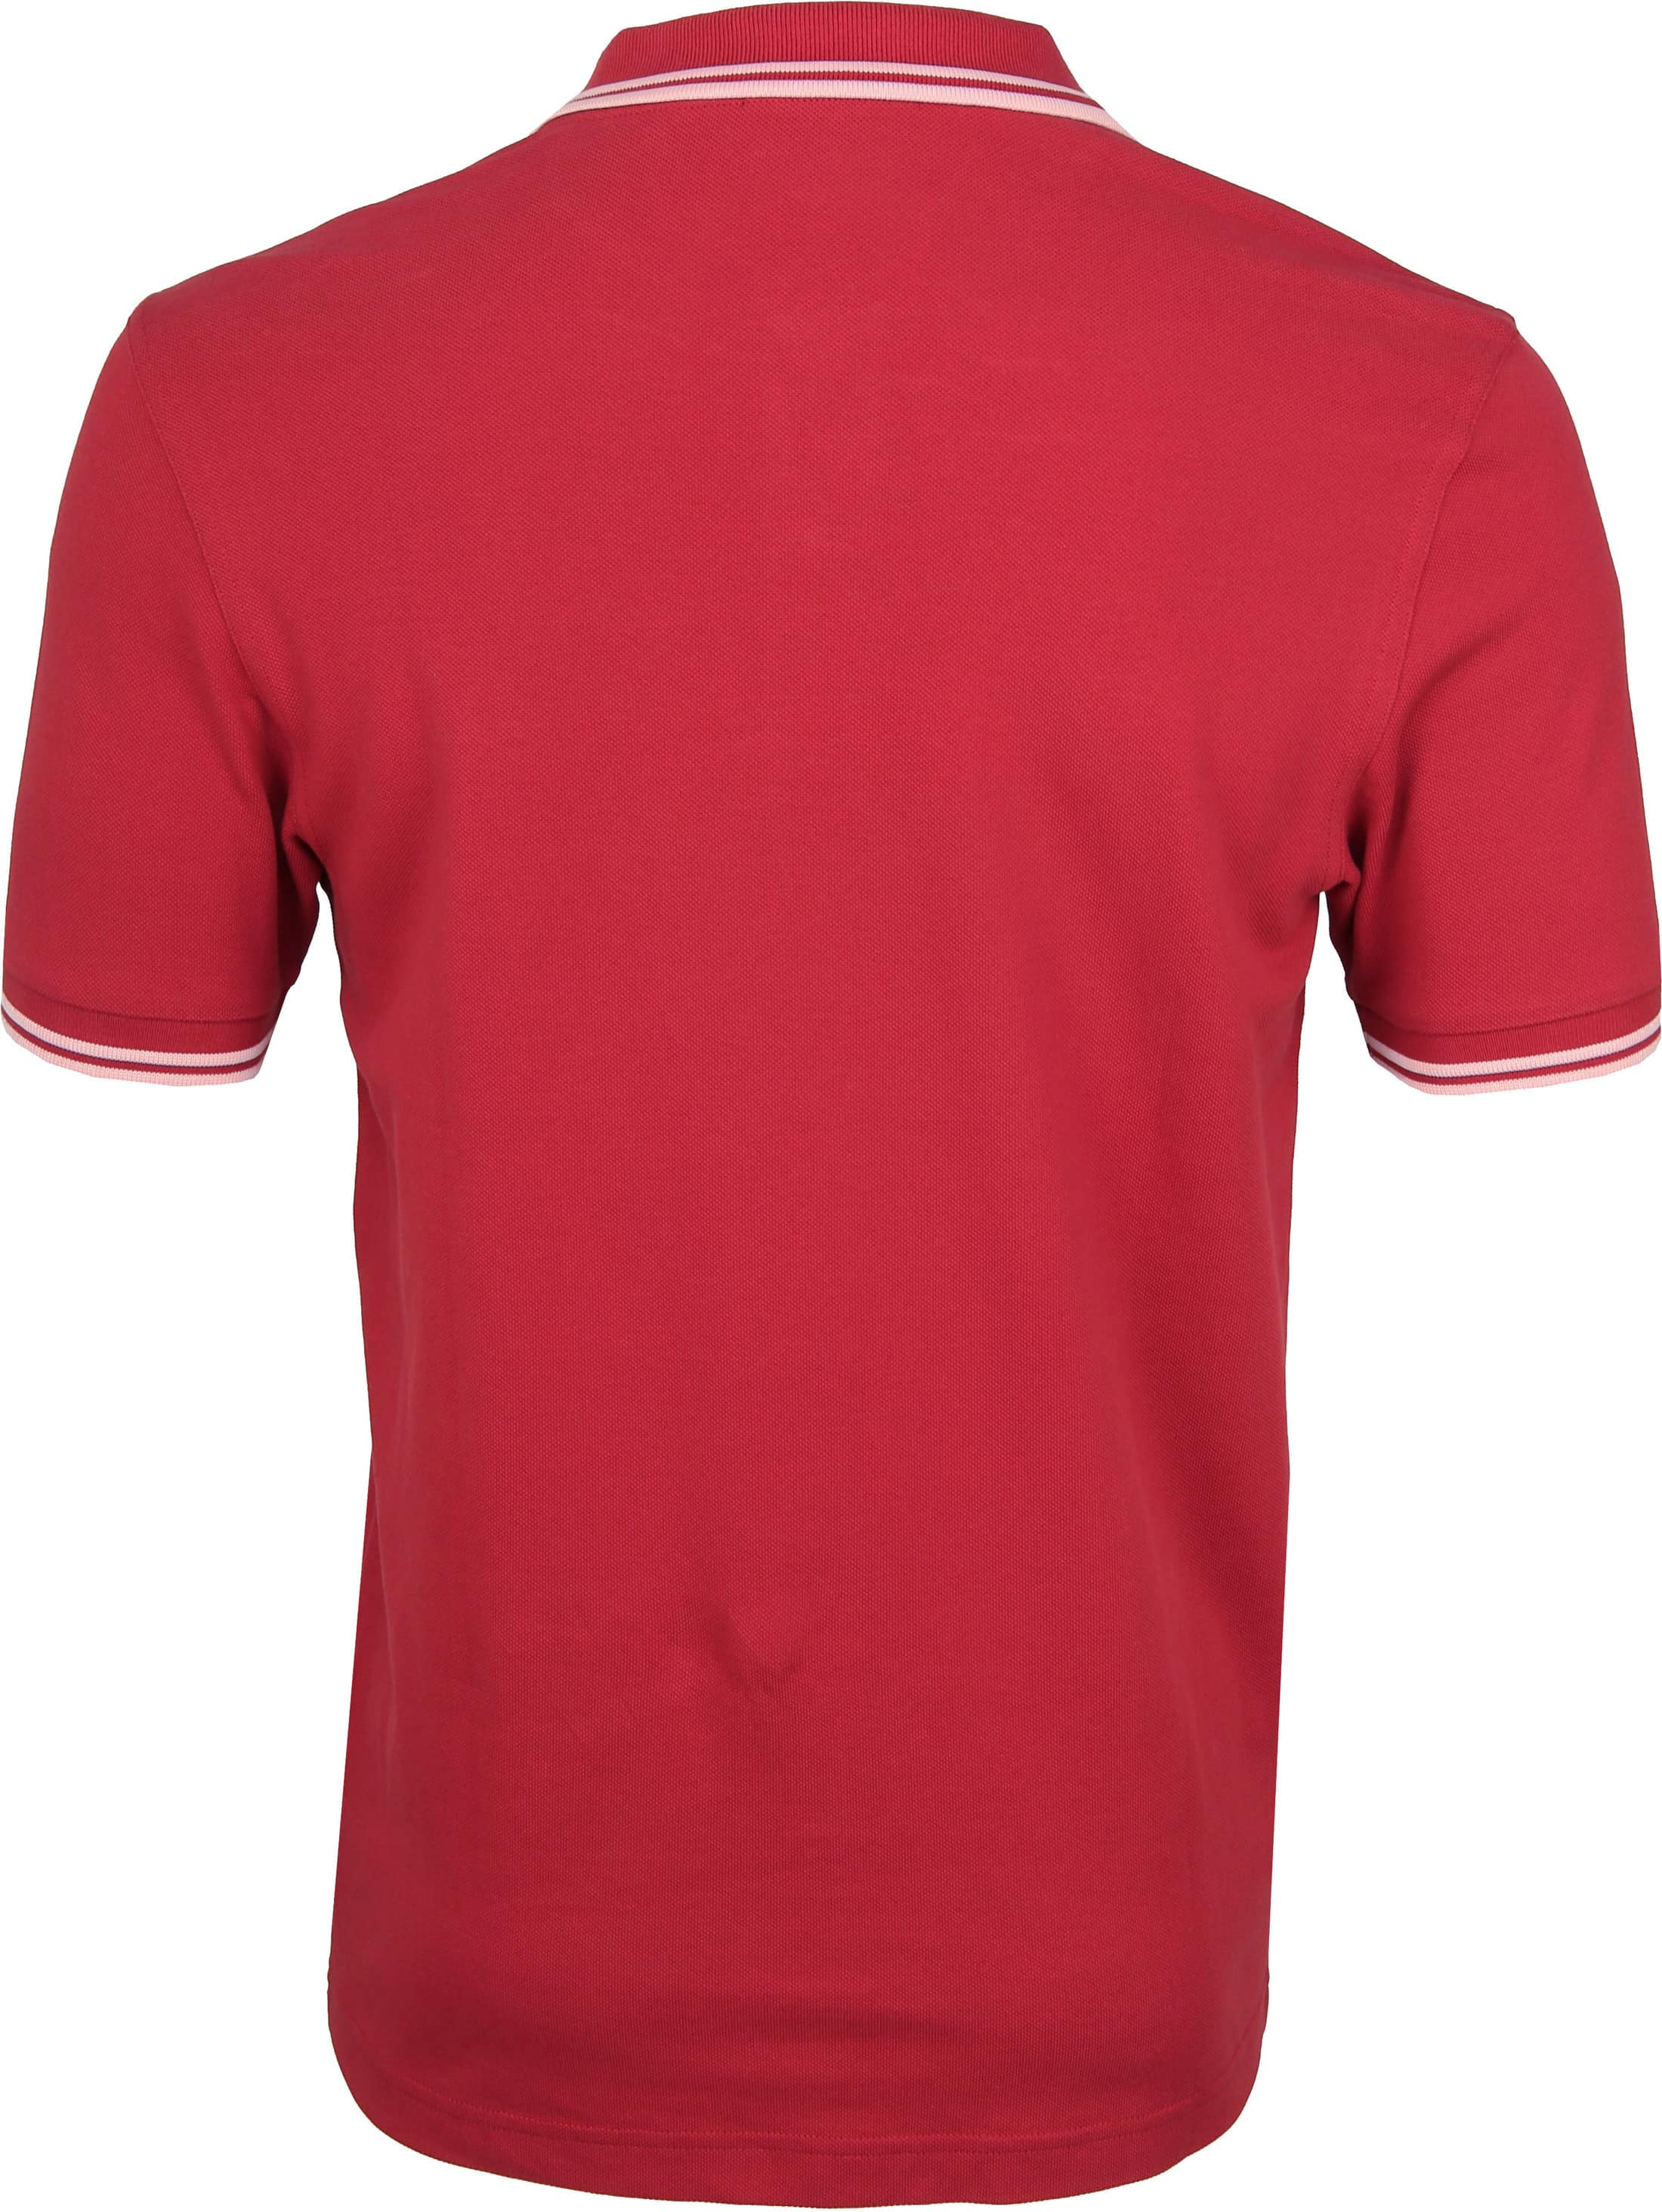 Fred Perry Polo Rood 541 foto 2